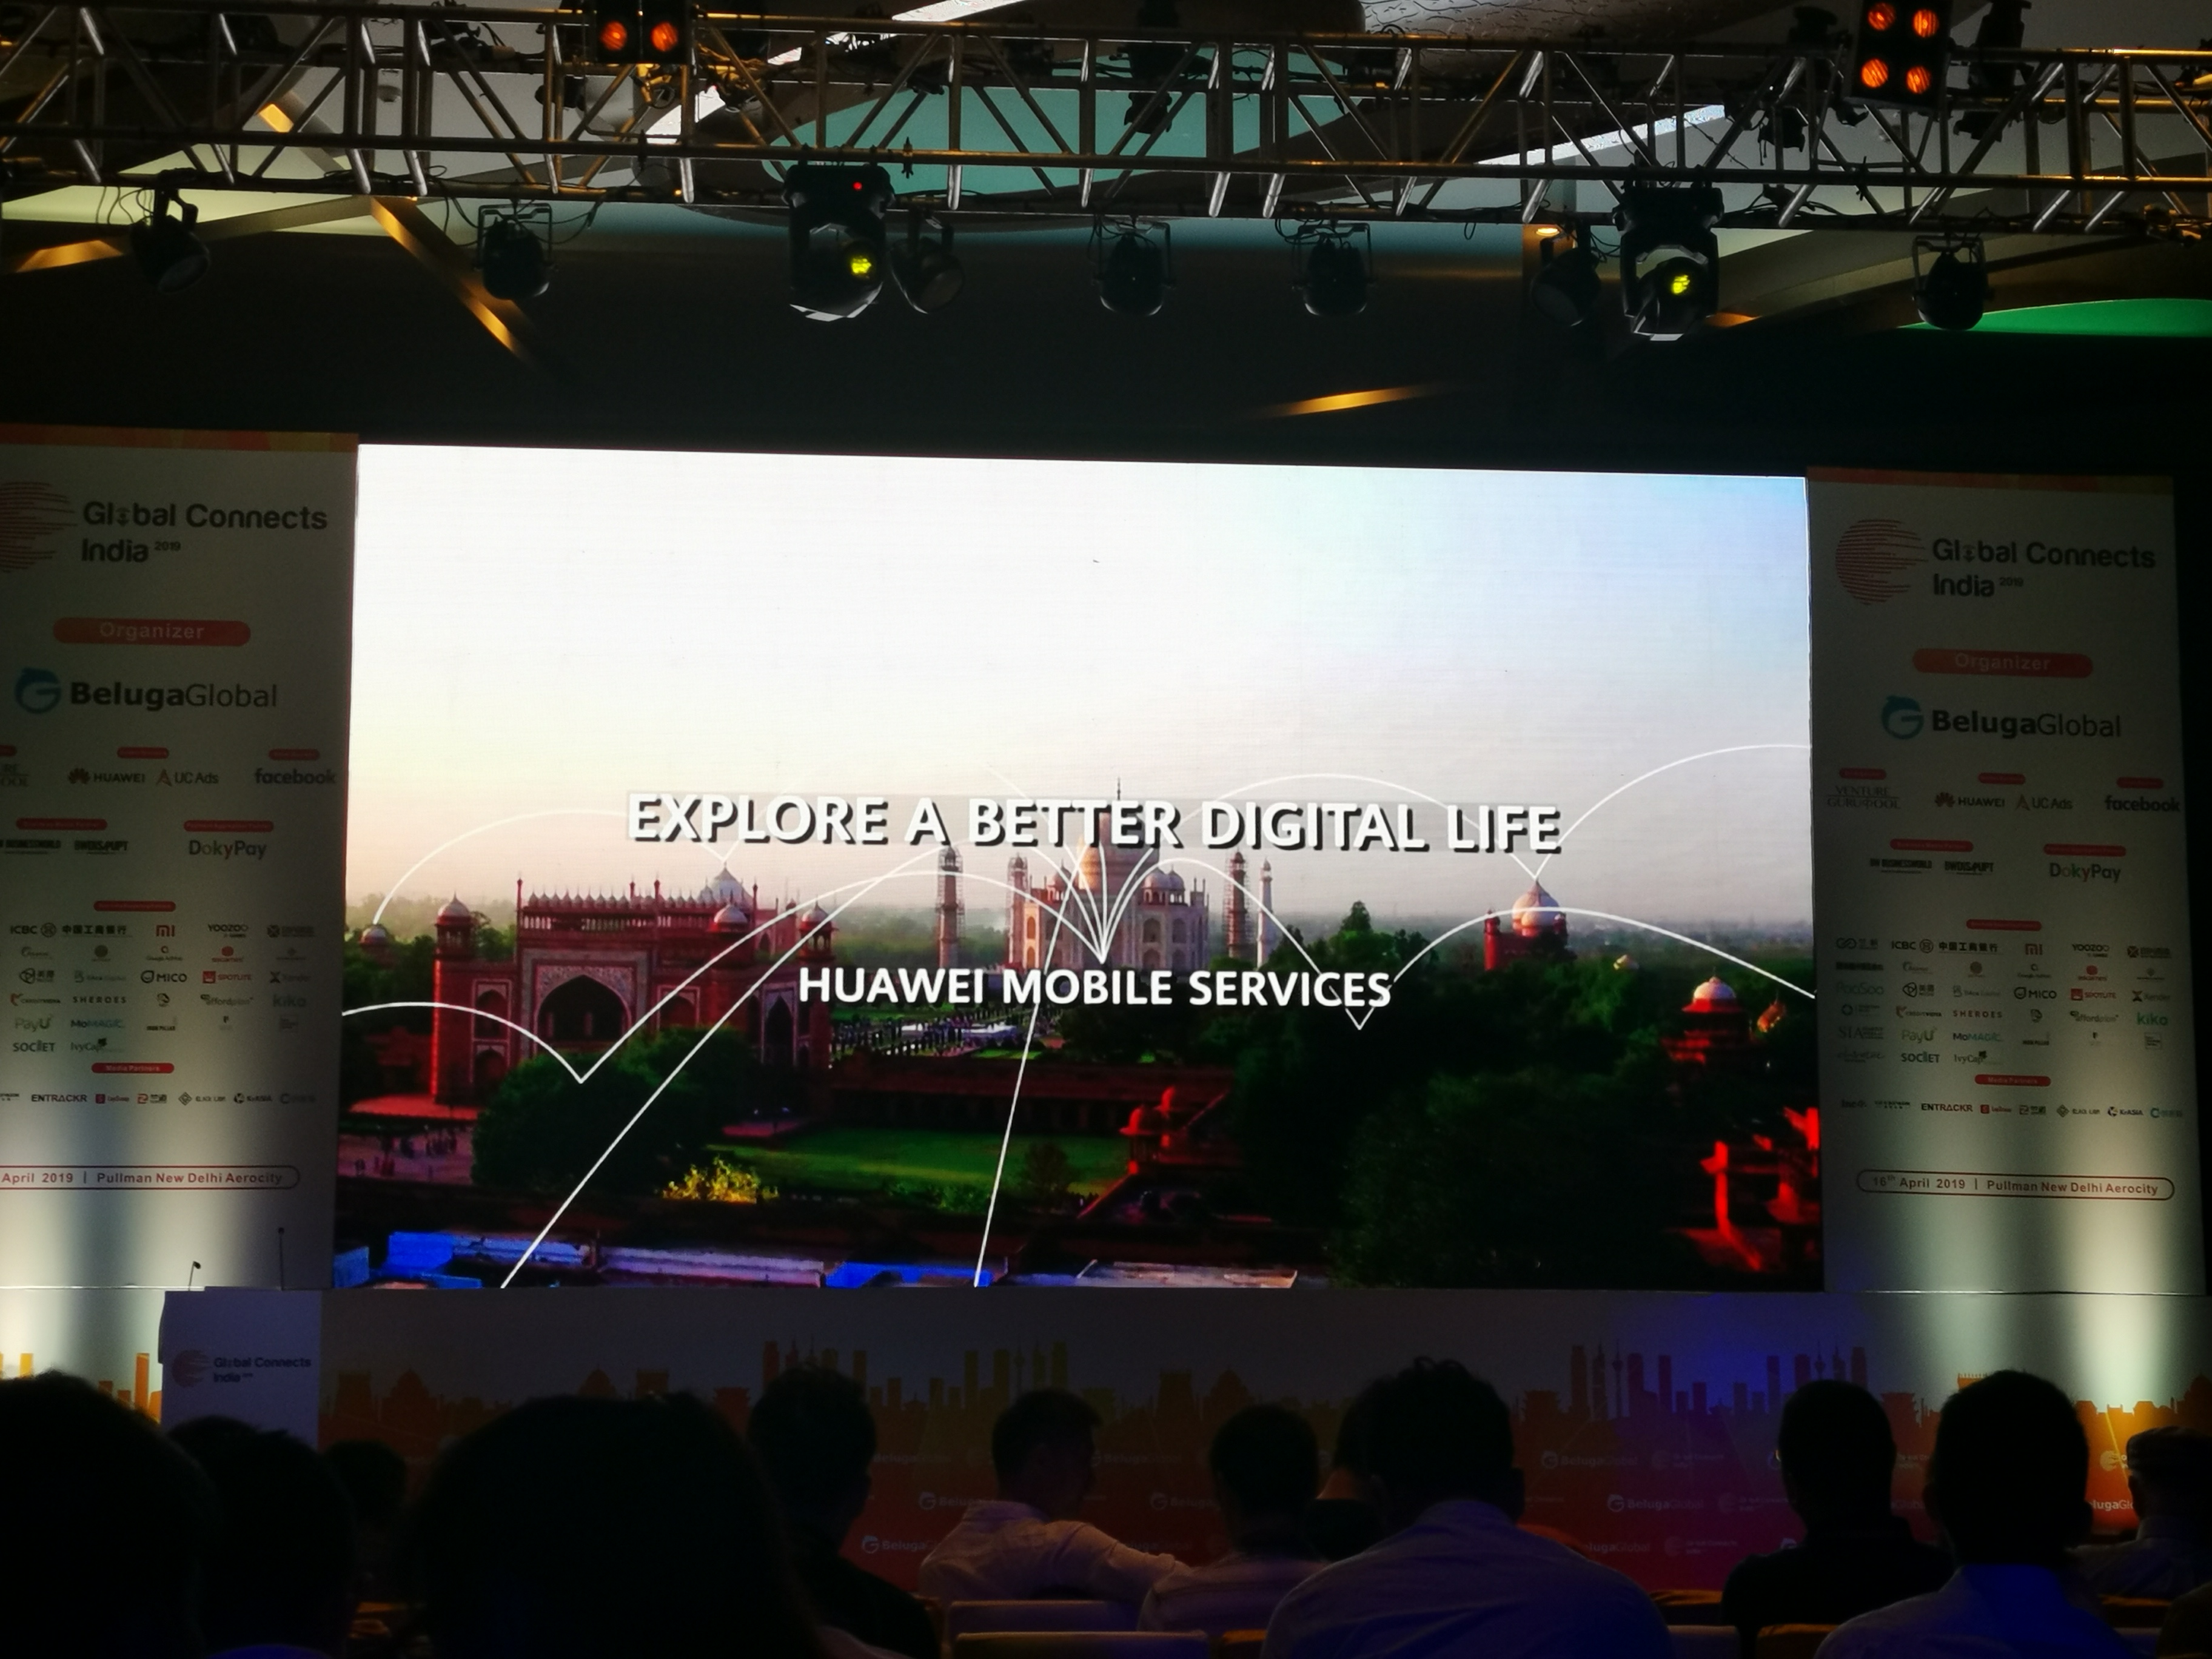 Huawei Mobile Services: Bridging India to Asia Pacific